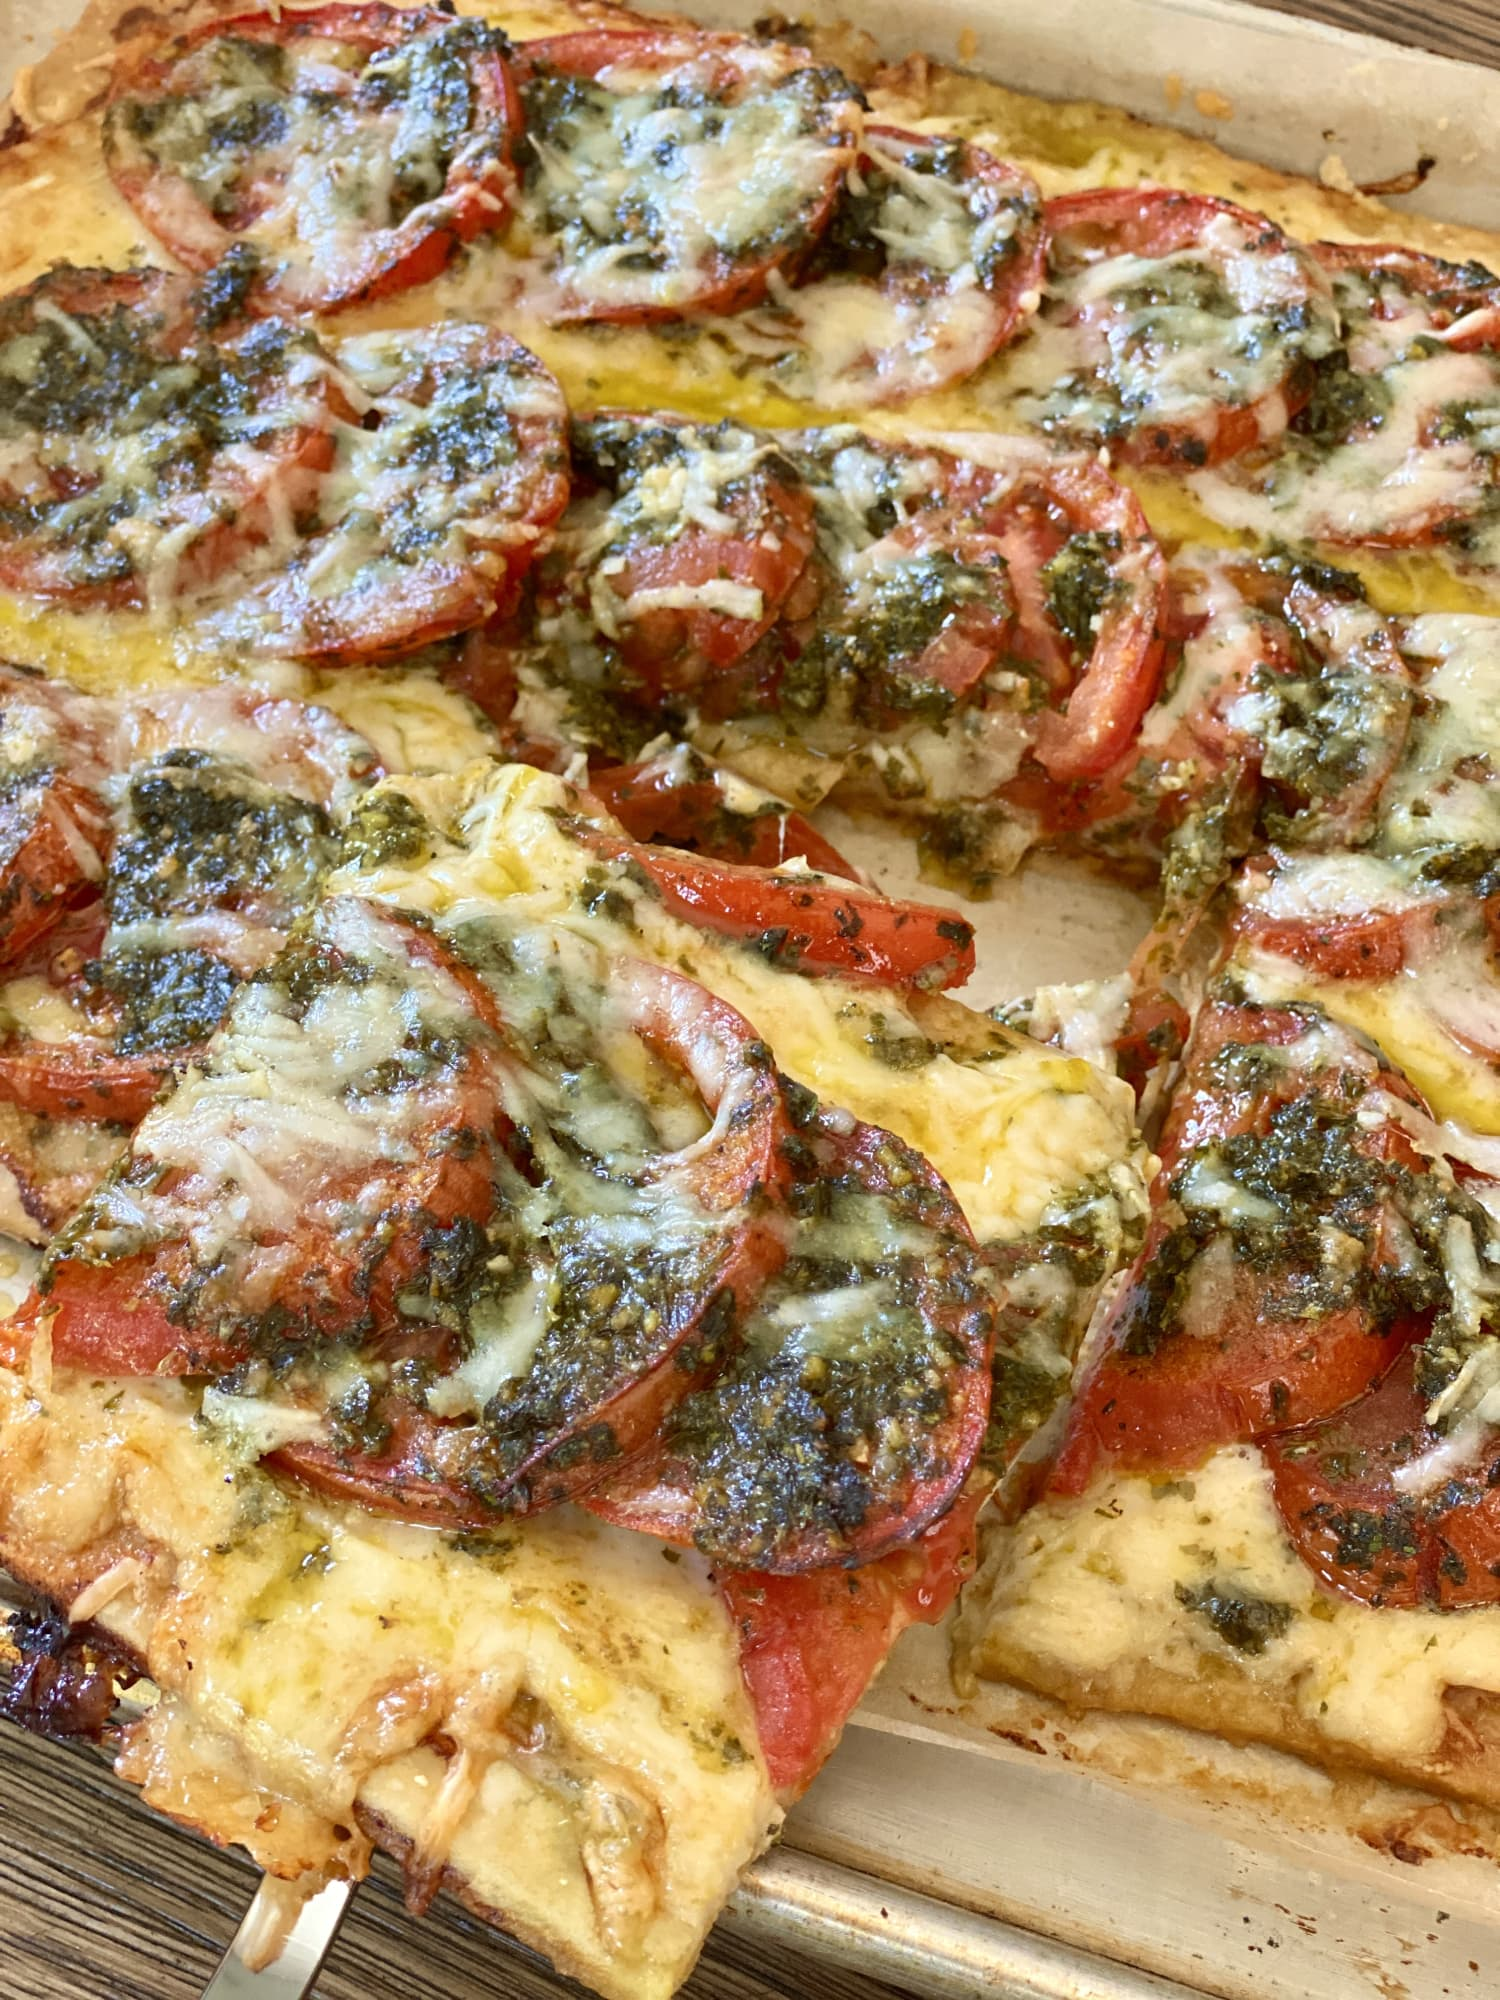 I Tried Ina Garten's Cheesy Tomato Tart (It's One of Her Favorite Summer Lunches)